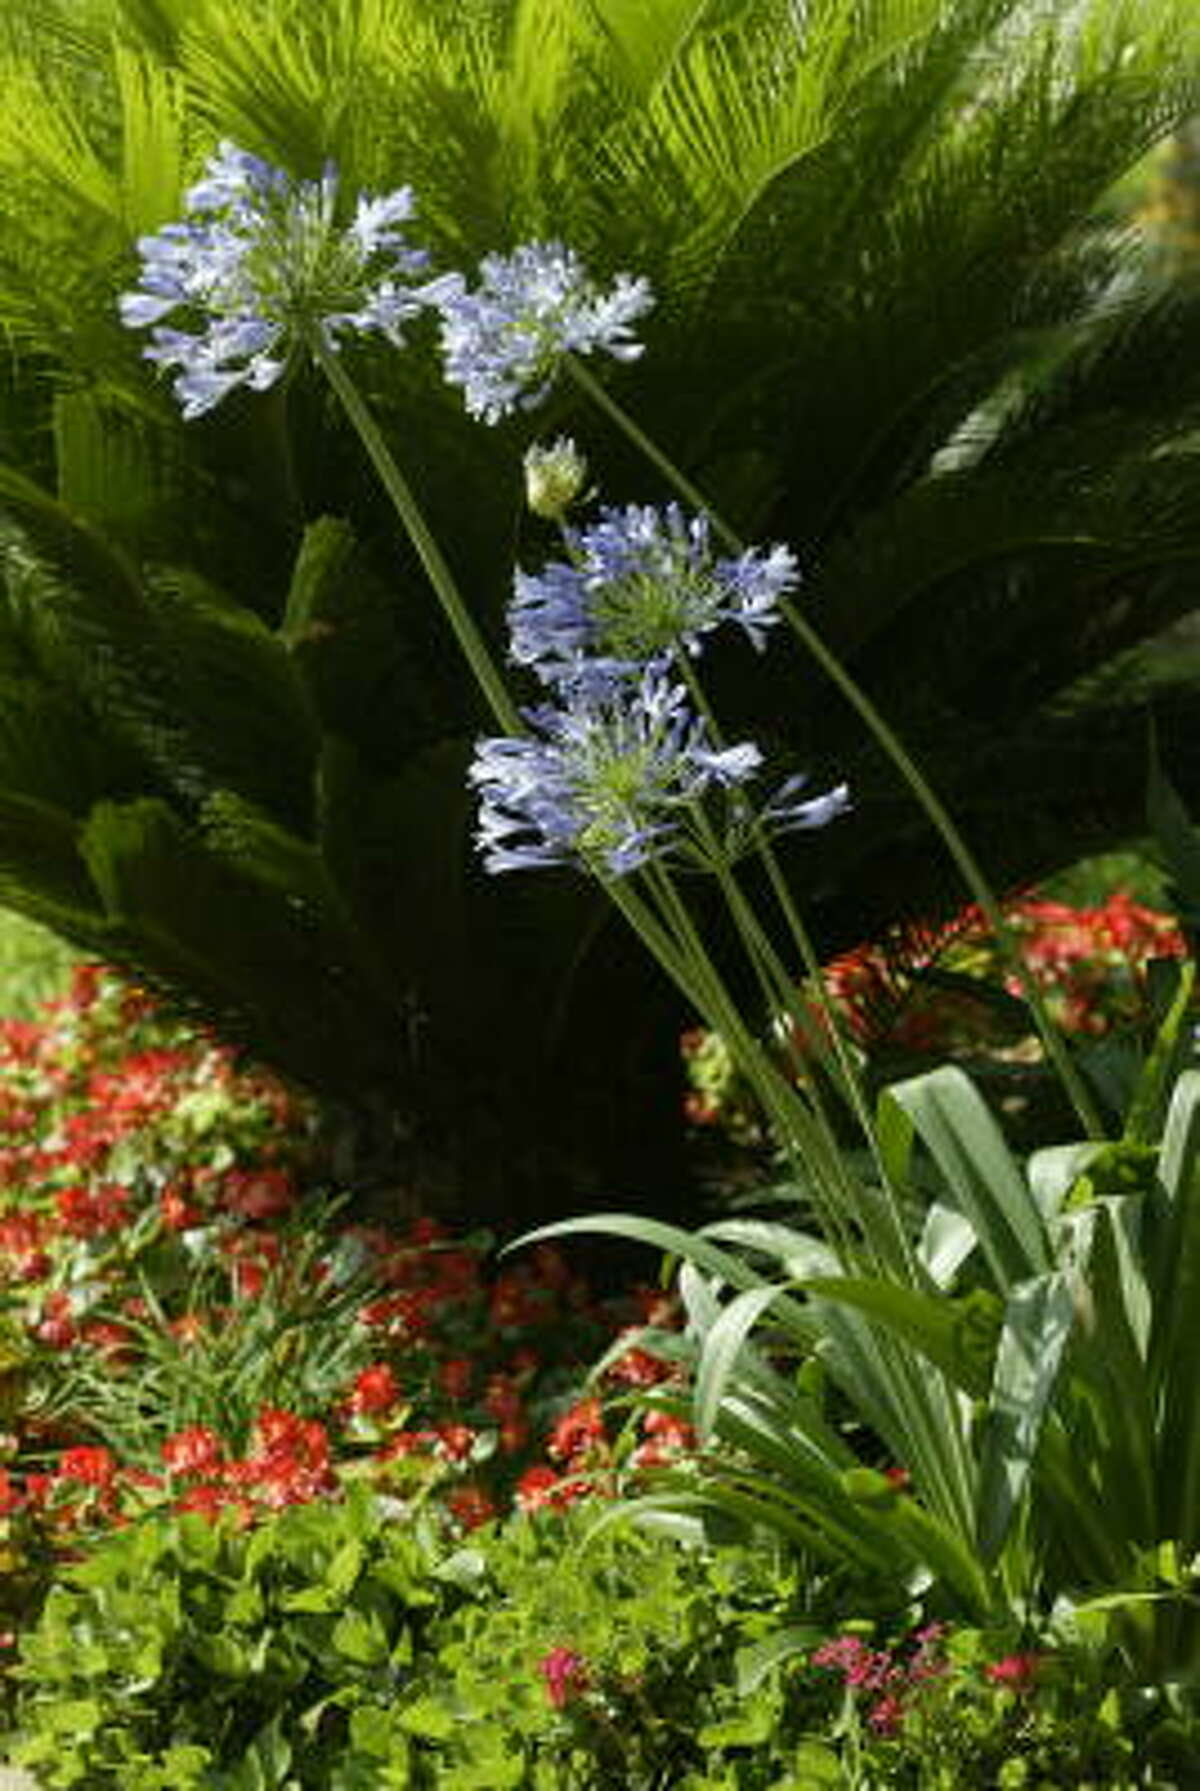 Blue agapanthus and red begonias ensure curb appeal.